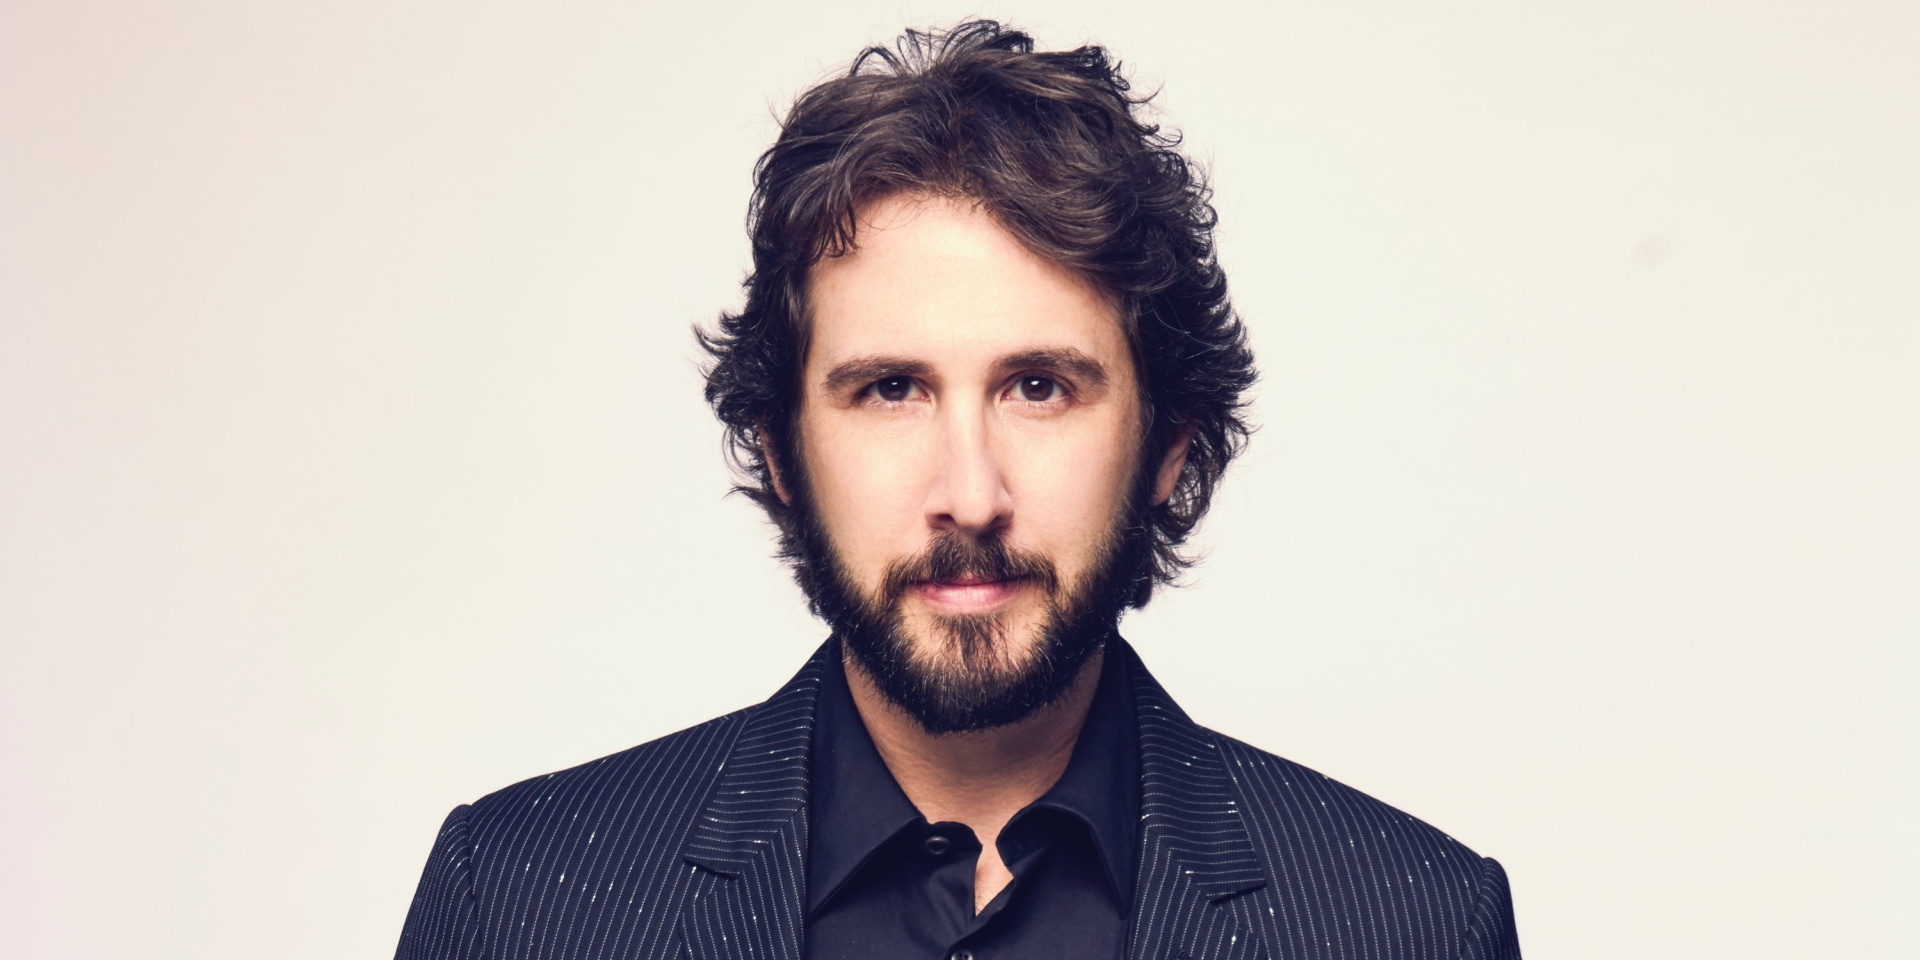 """Fads will come and go but a great song will withstand everything"": An interview with Josh Groban"